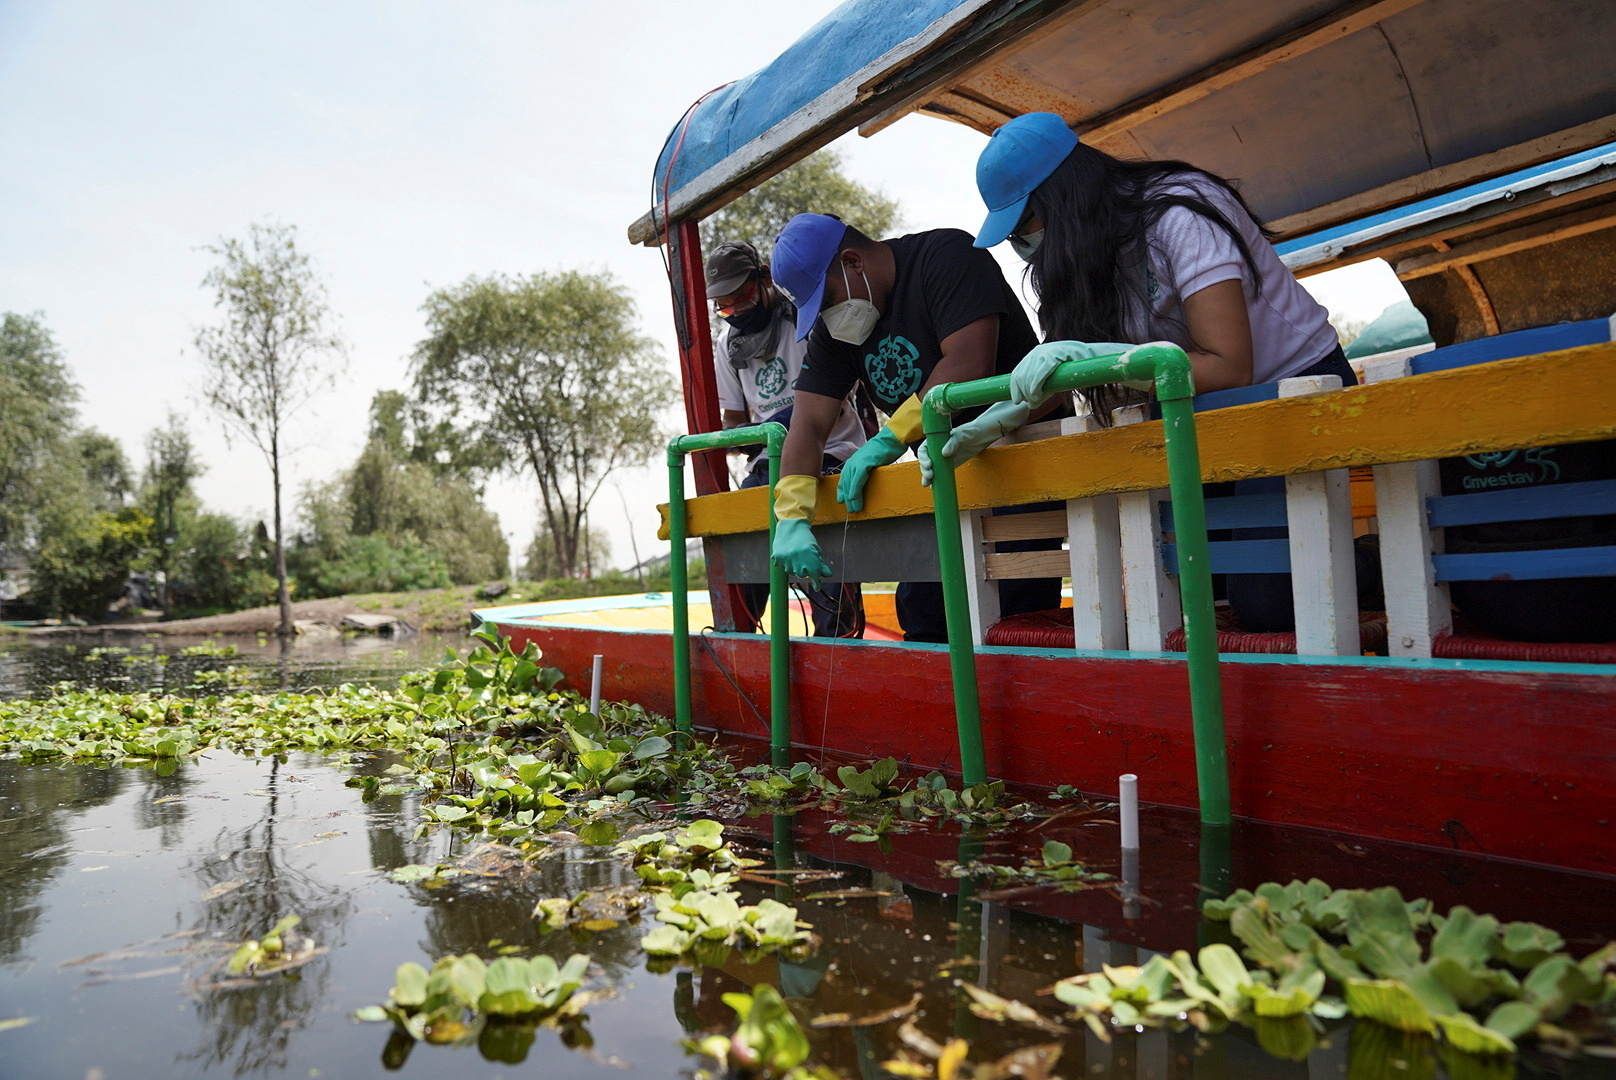 """Members of a team of researchers from the Center for Research and Advanced Studies (Cinvestav), who developed a method that converts solar energy into photovoltaic energy that activates a pump that sends """"nanobubbles"""" into the water, install a water system at a trajinera boat as part of a project to clean the polluted waters at the canals of Xochimilco, in Mexico City, Mexico August 20, 2021. REUTERS/Toya Sarno Jordan"""